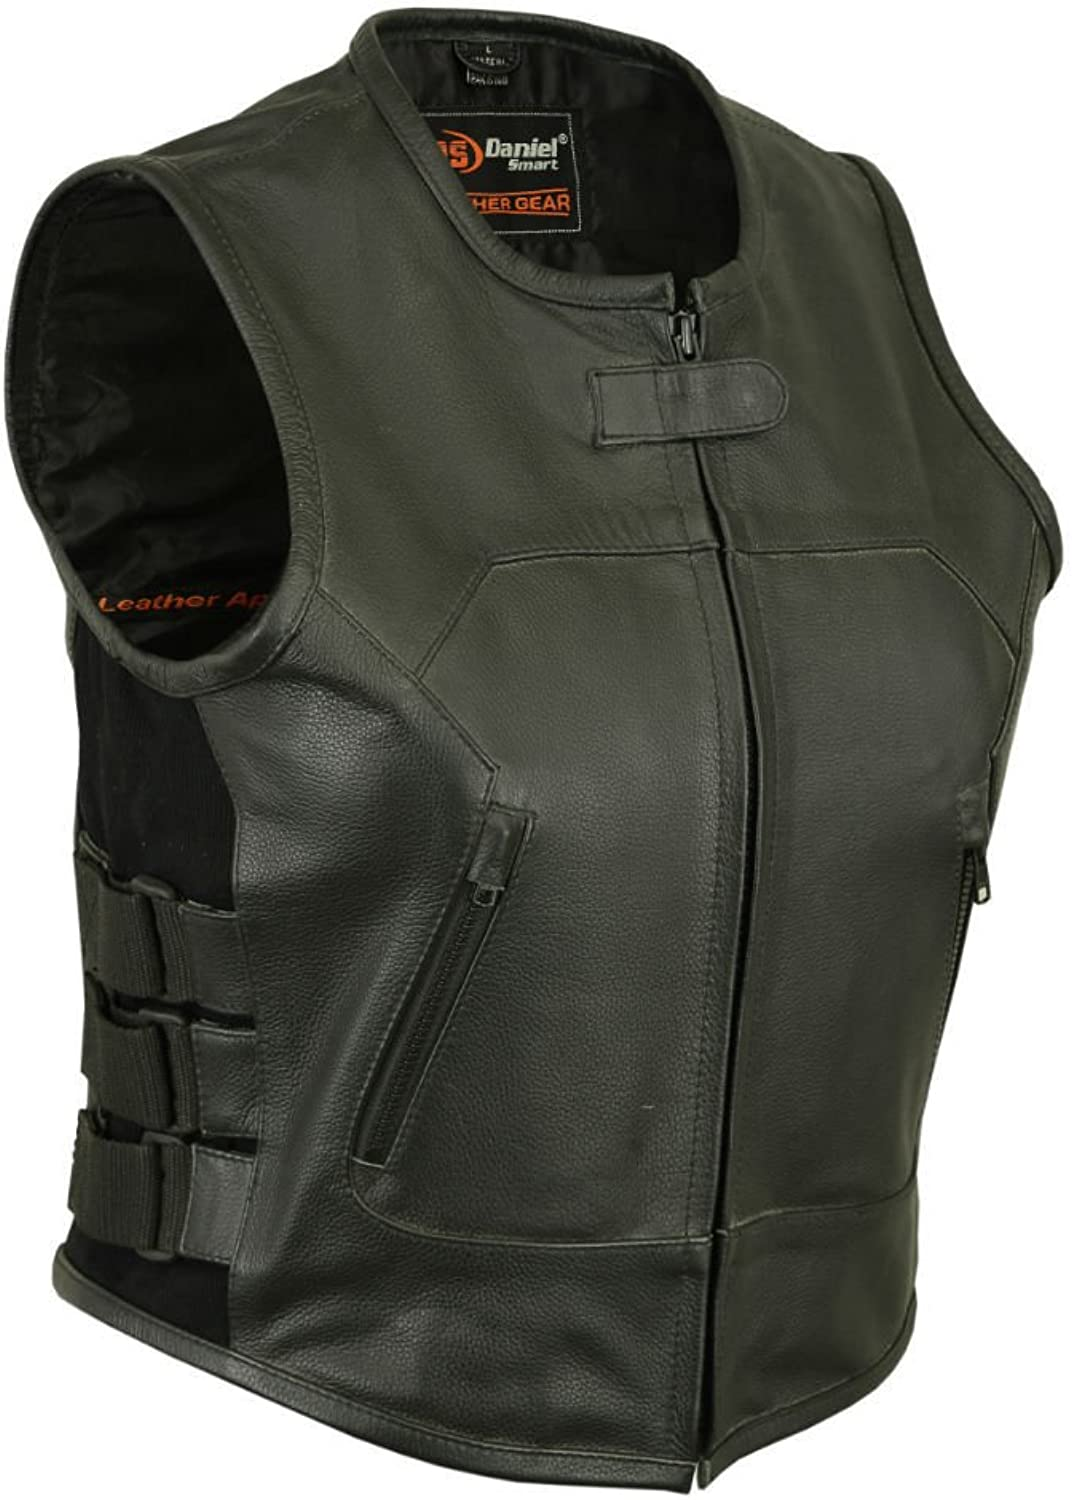 Daniel Smart Motorcycle Ladies blk SWAT Team Style Premium Thick Leather Gun Pocket Vest Blk